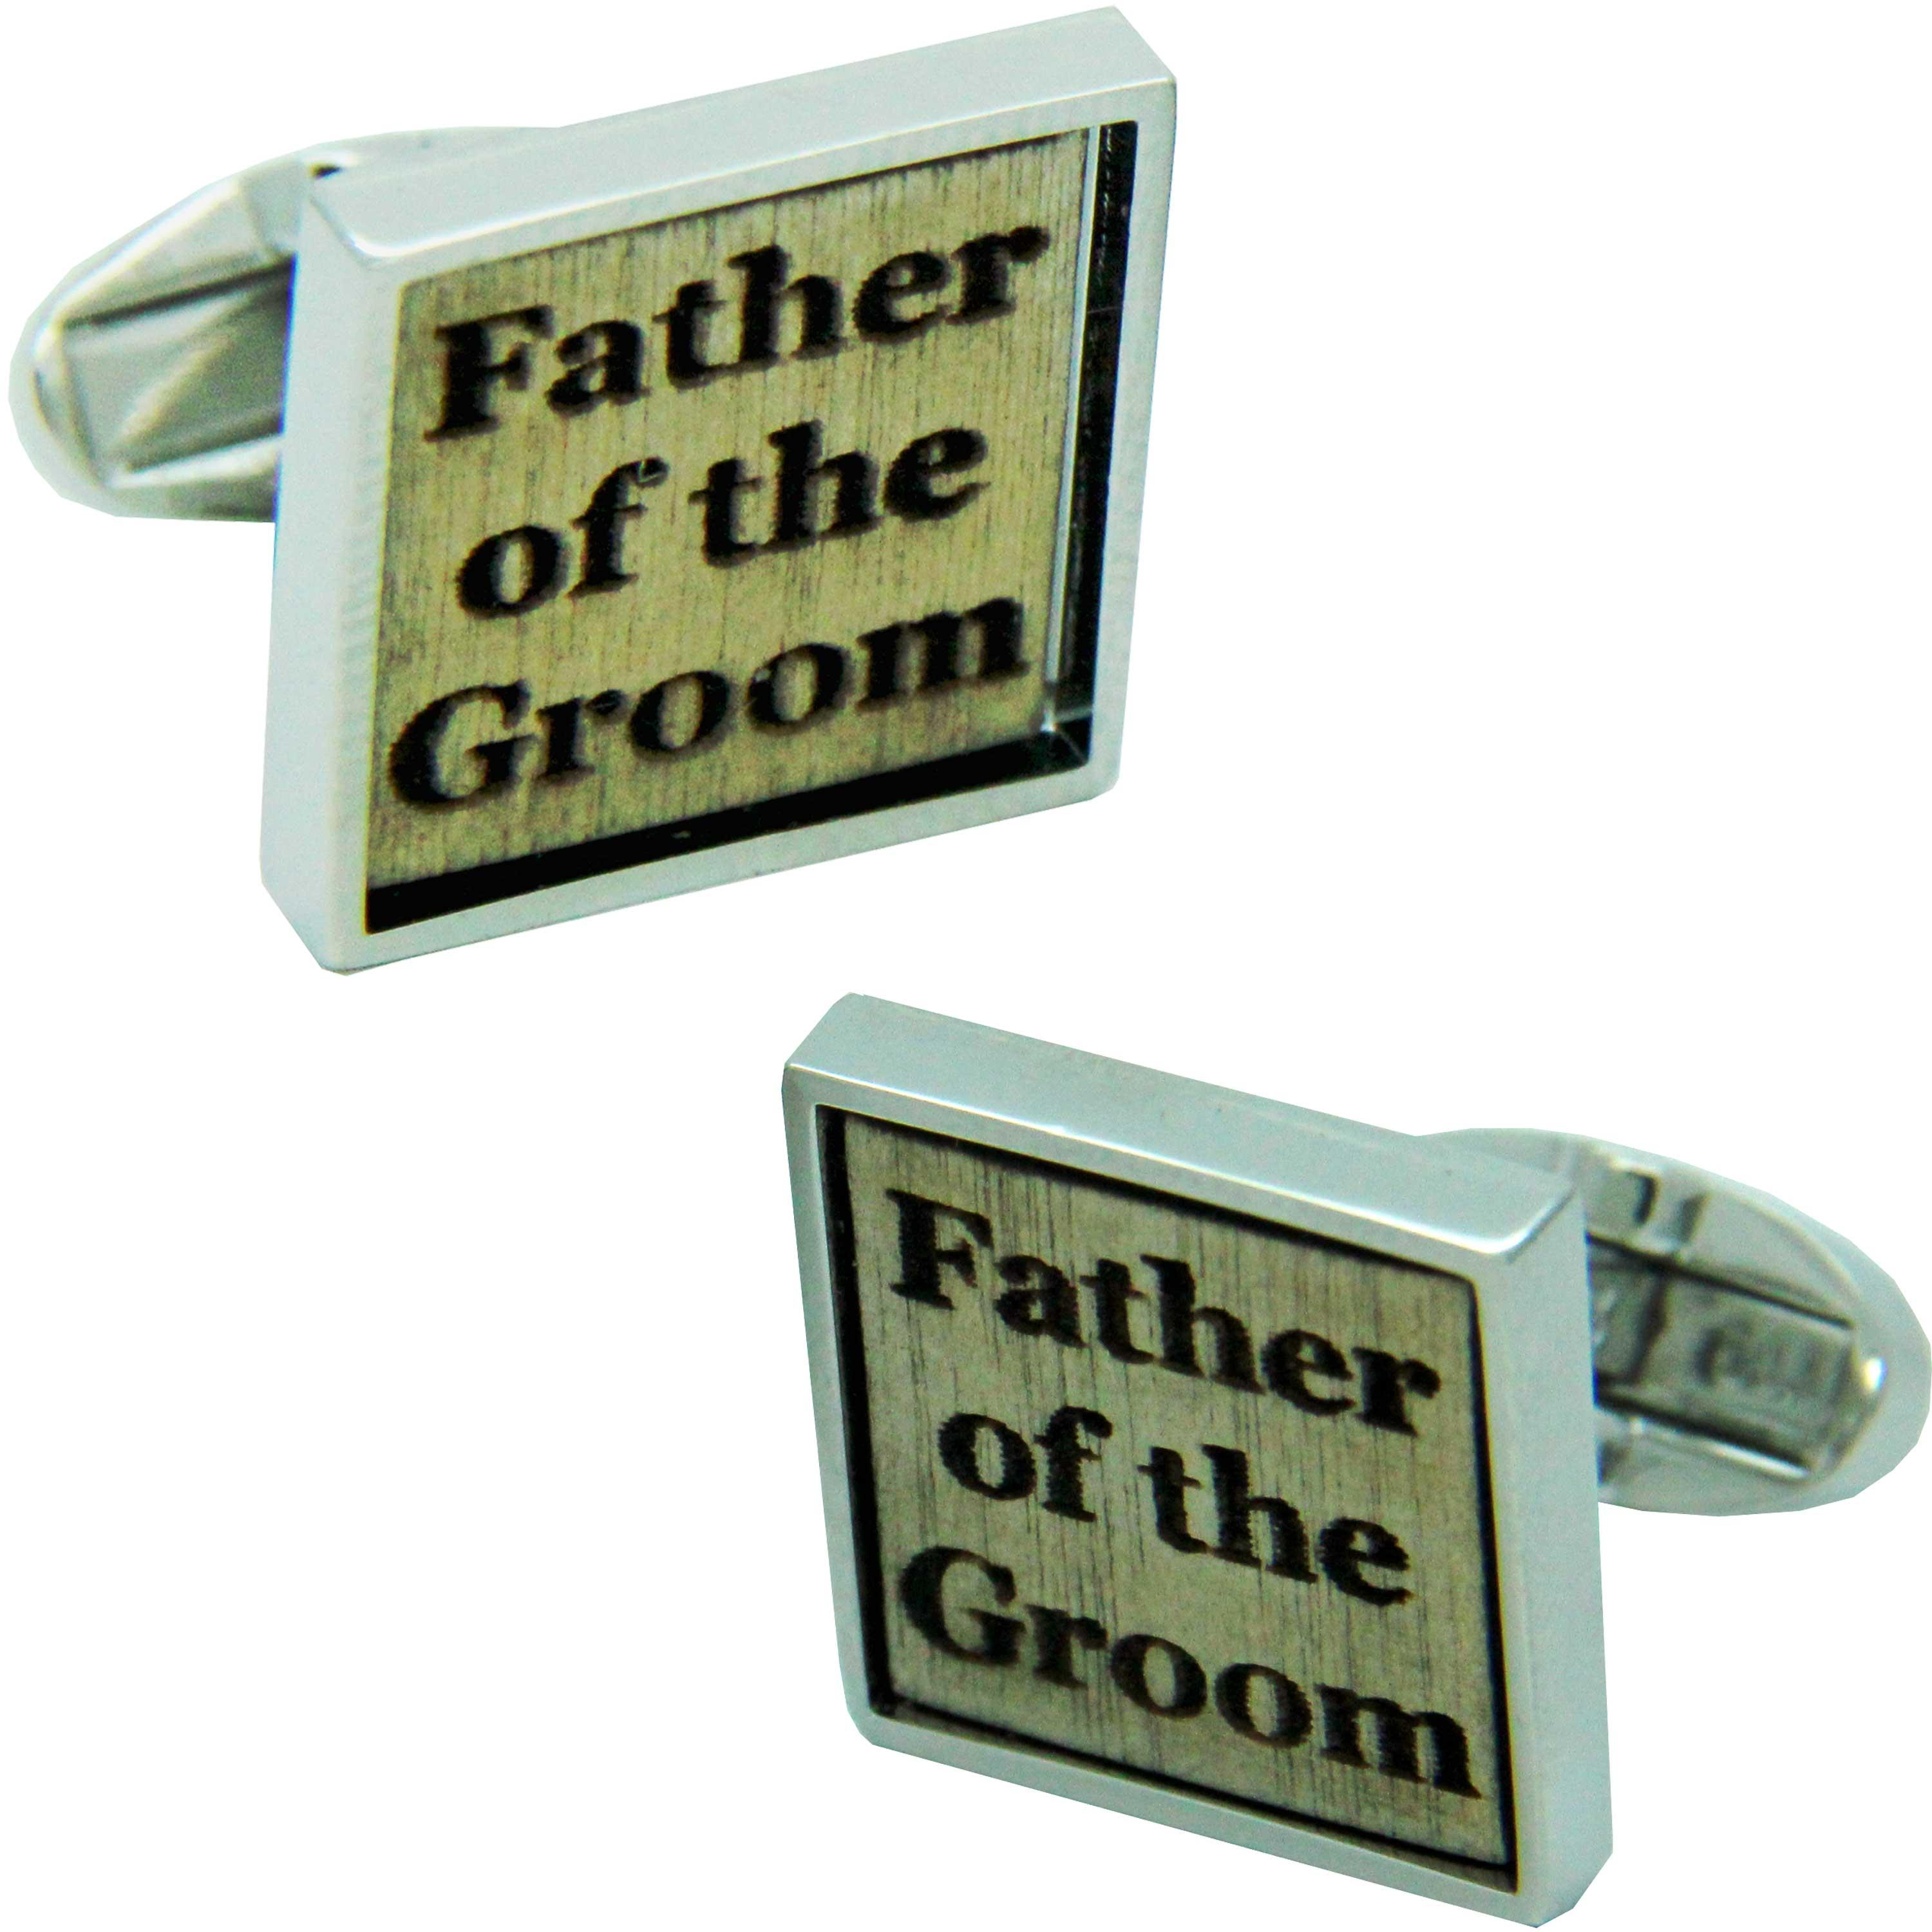 Birch Wood Father of the Groom Cufflinks from Cuffs & Co